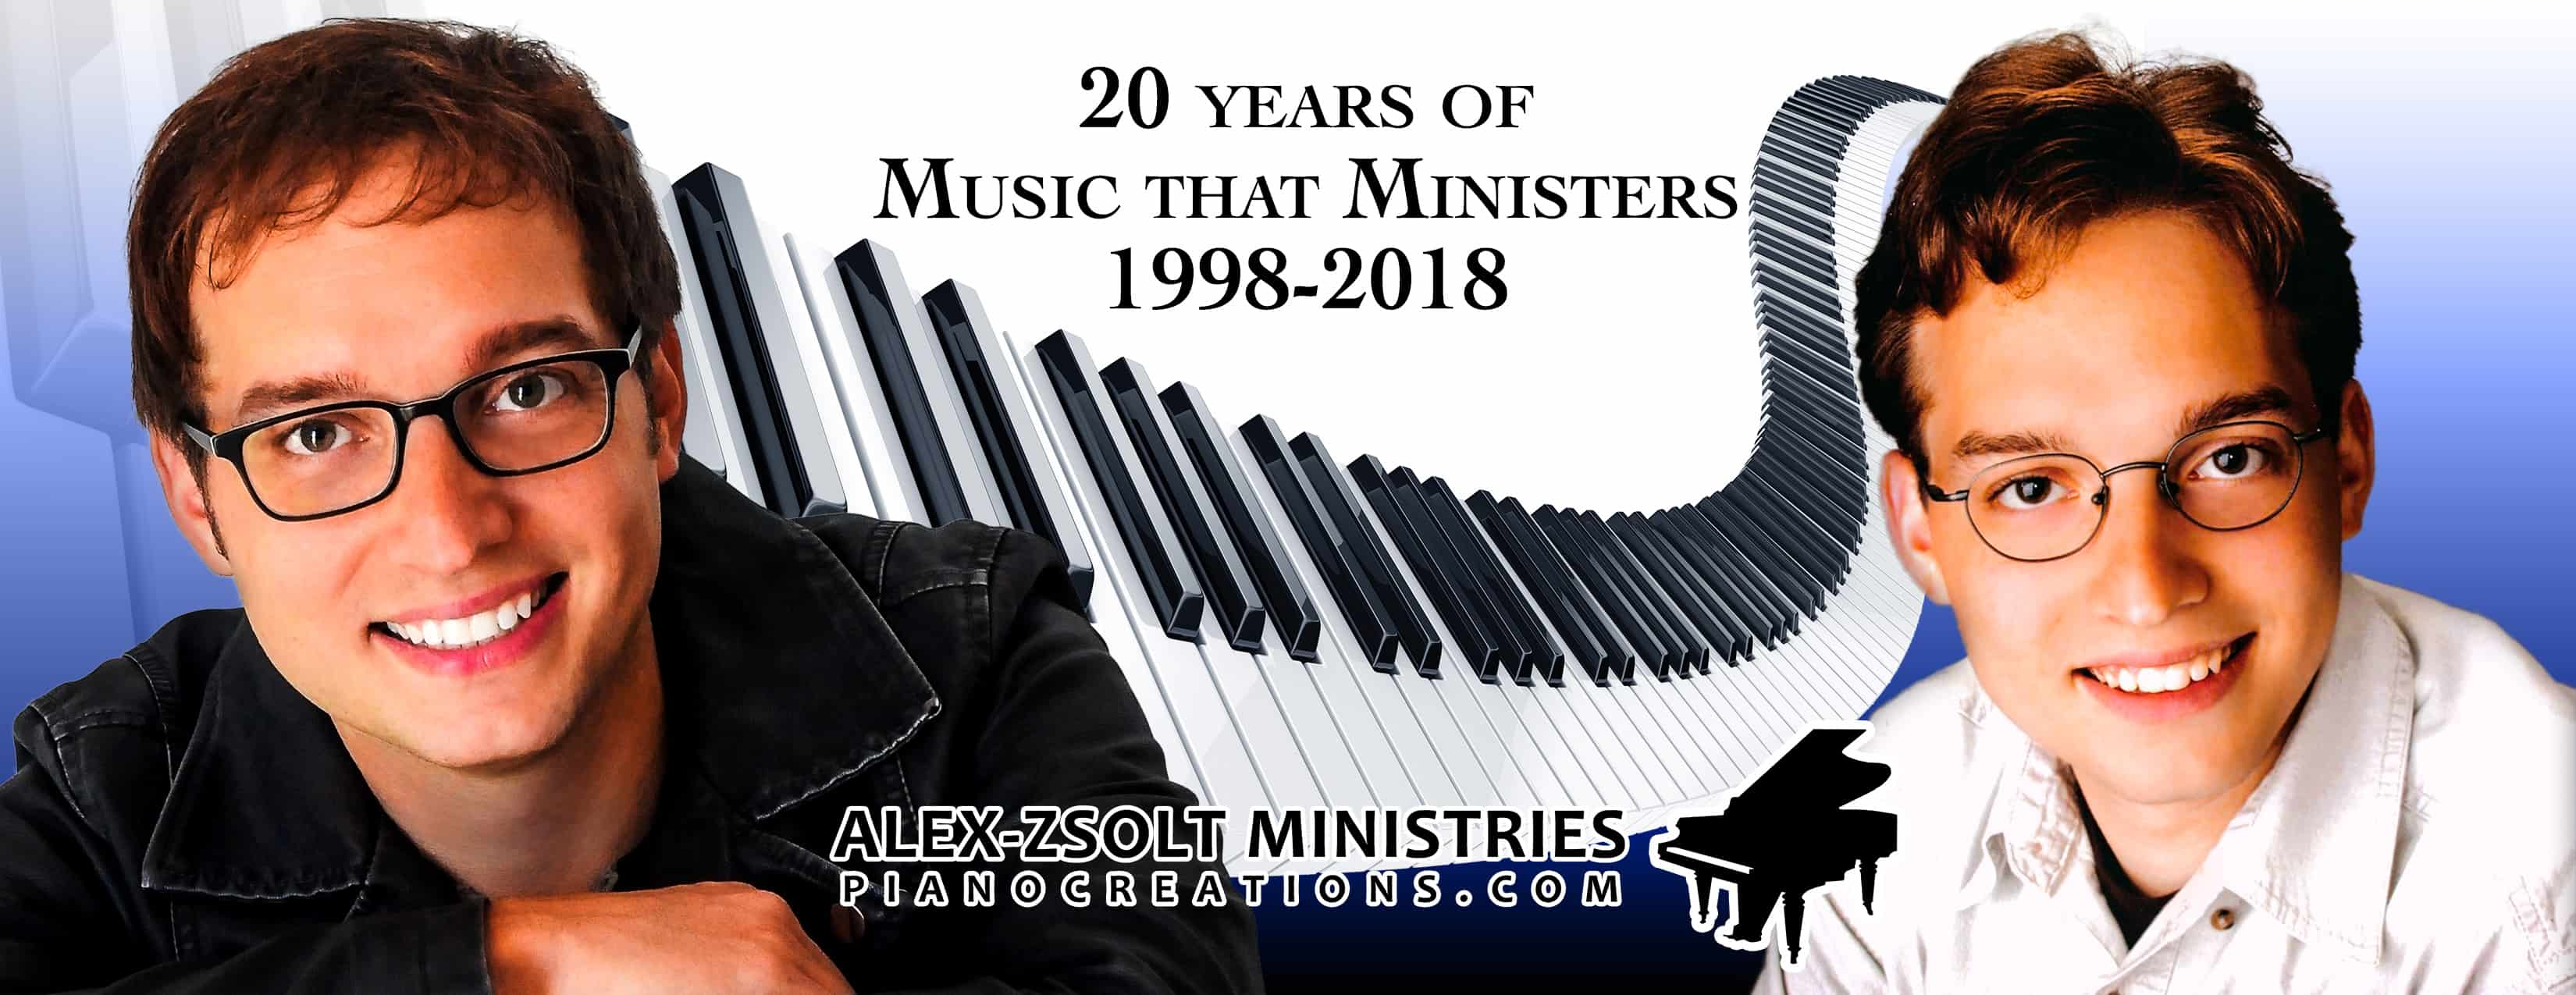 Alex-Zsolt Ministries 20th Anniversary